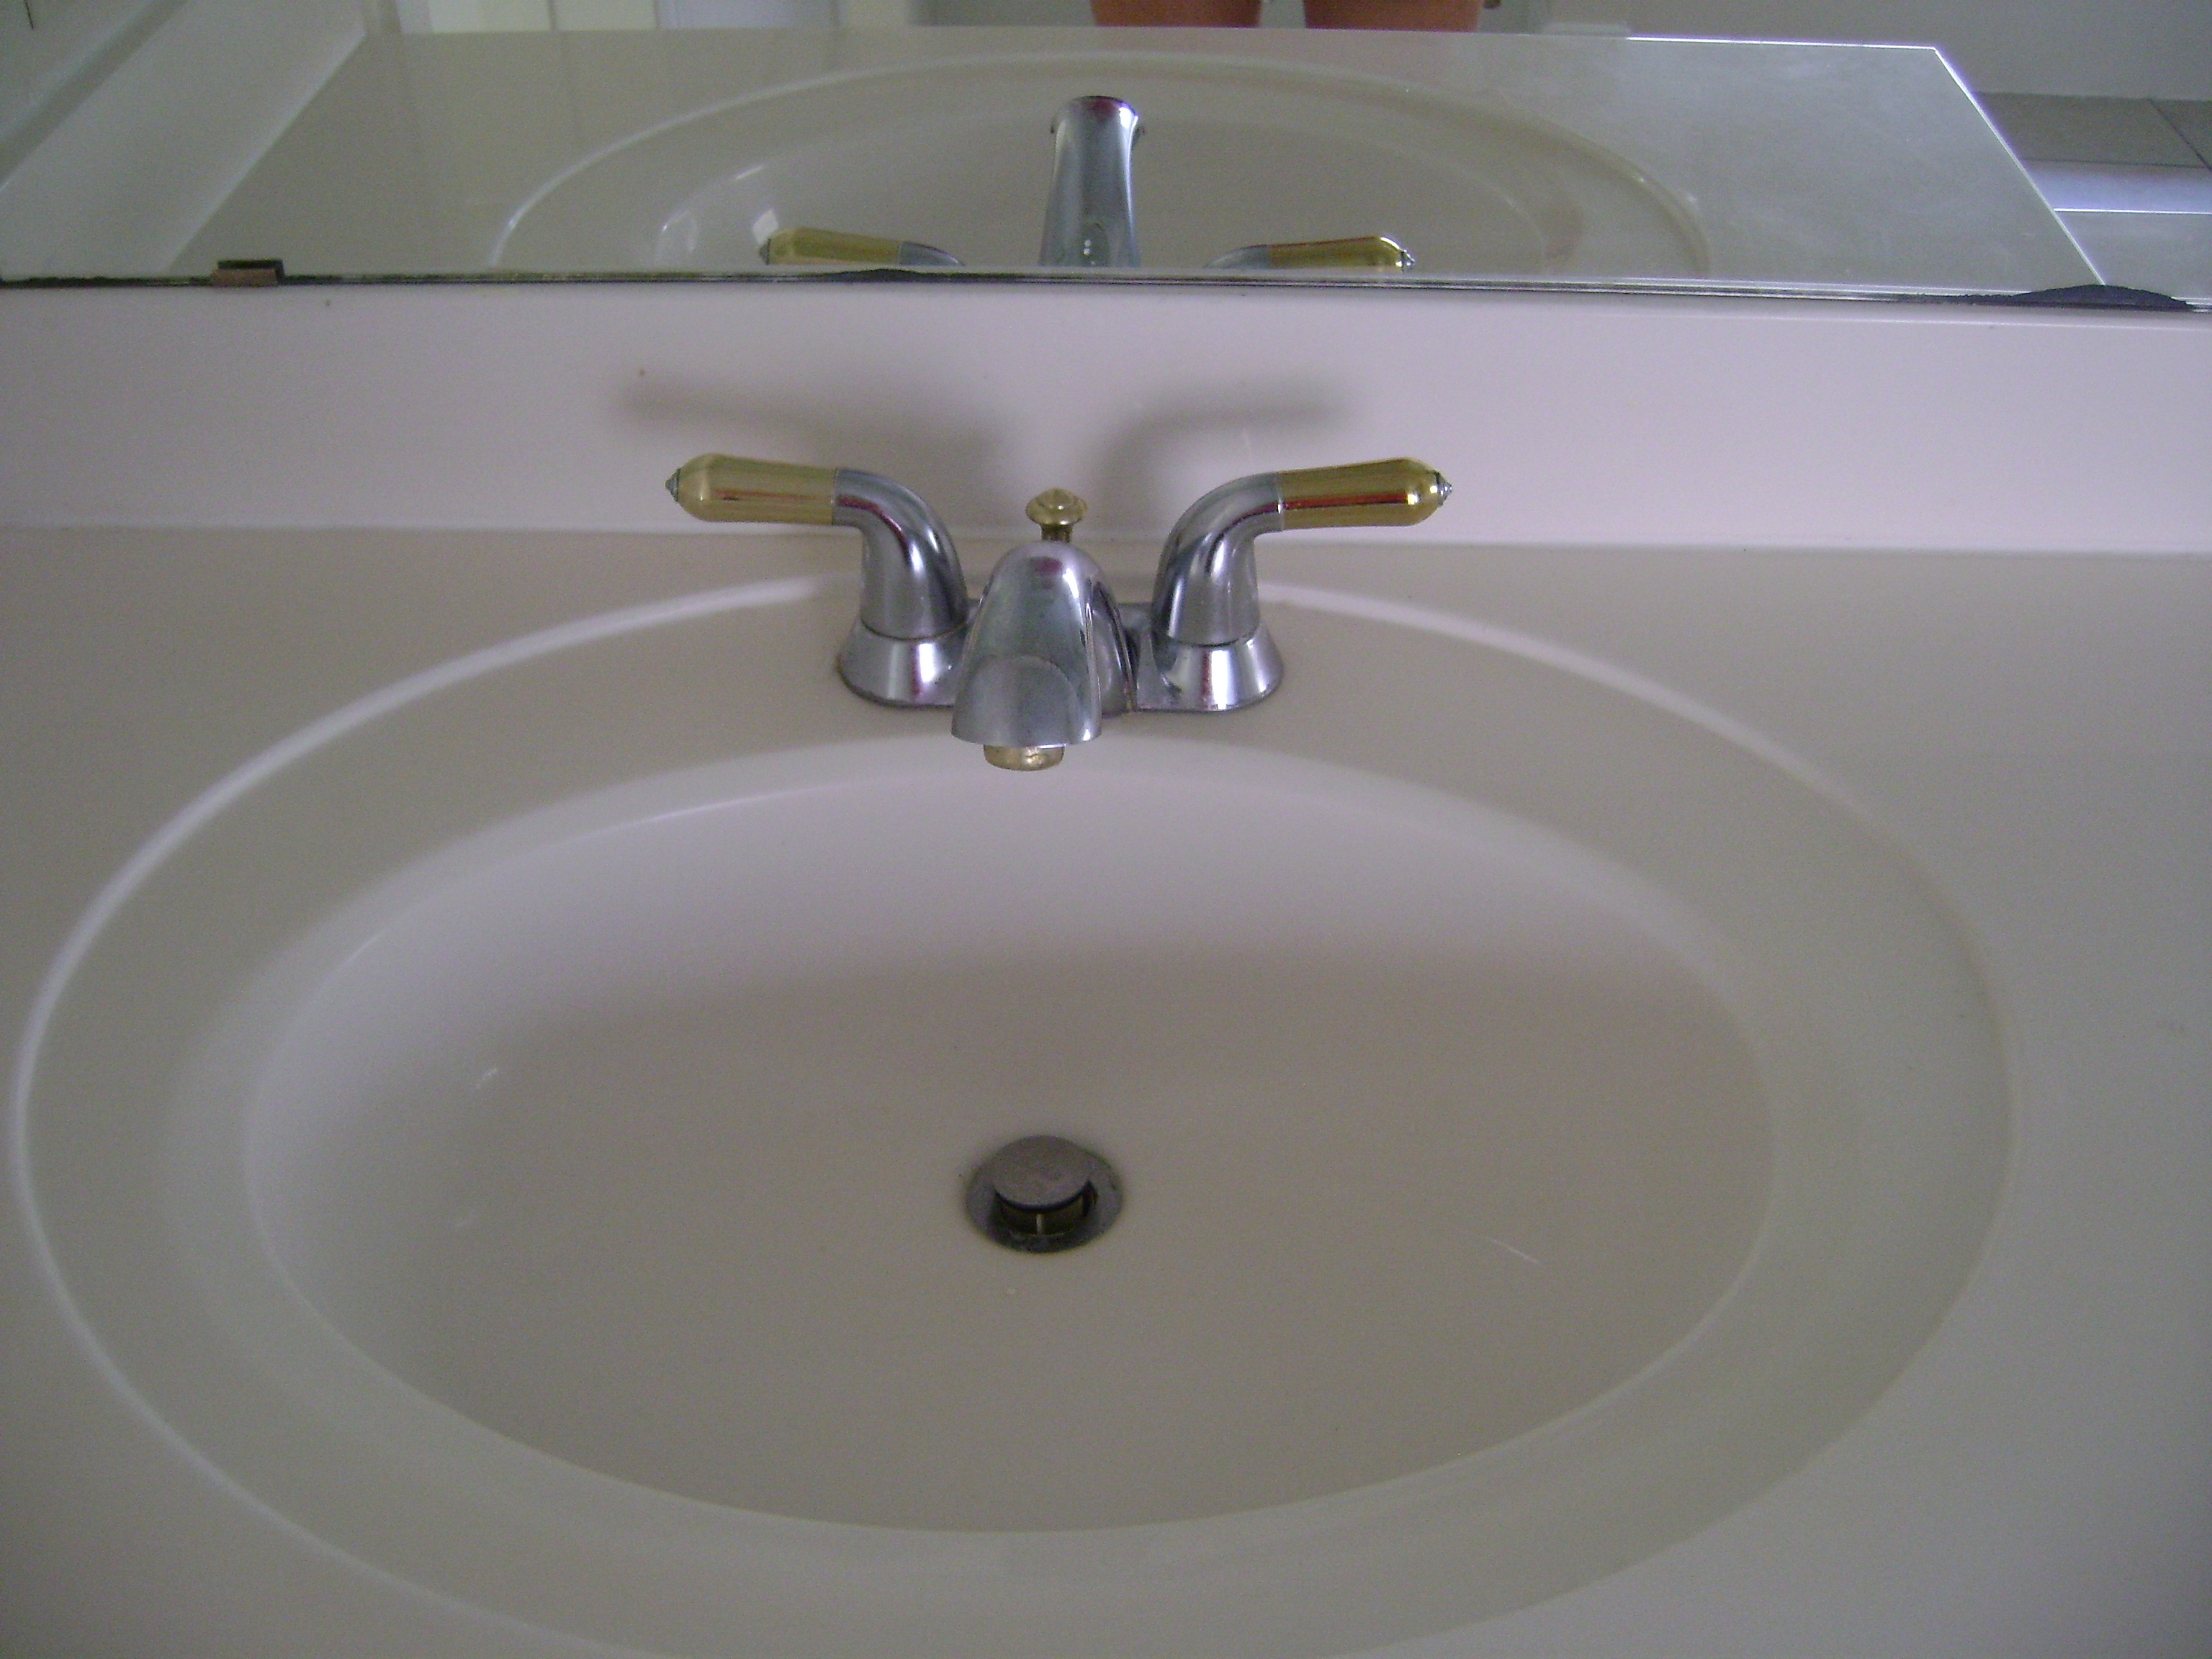 How To Install A Bidet Faucet Bathroom